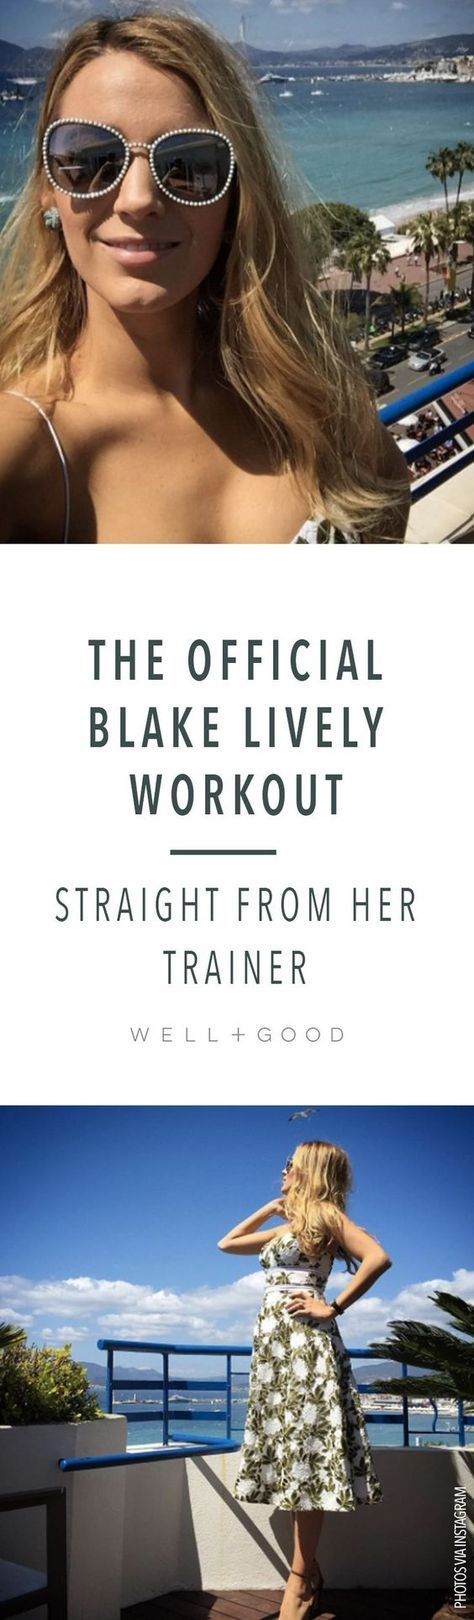 The official Blake Lively workout straight from her trainer